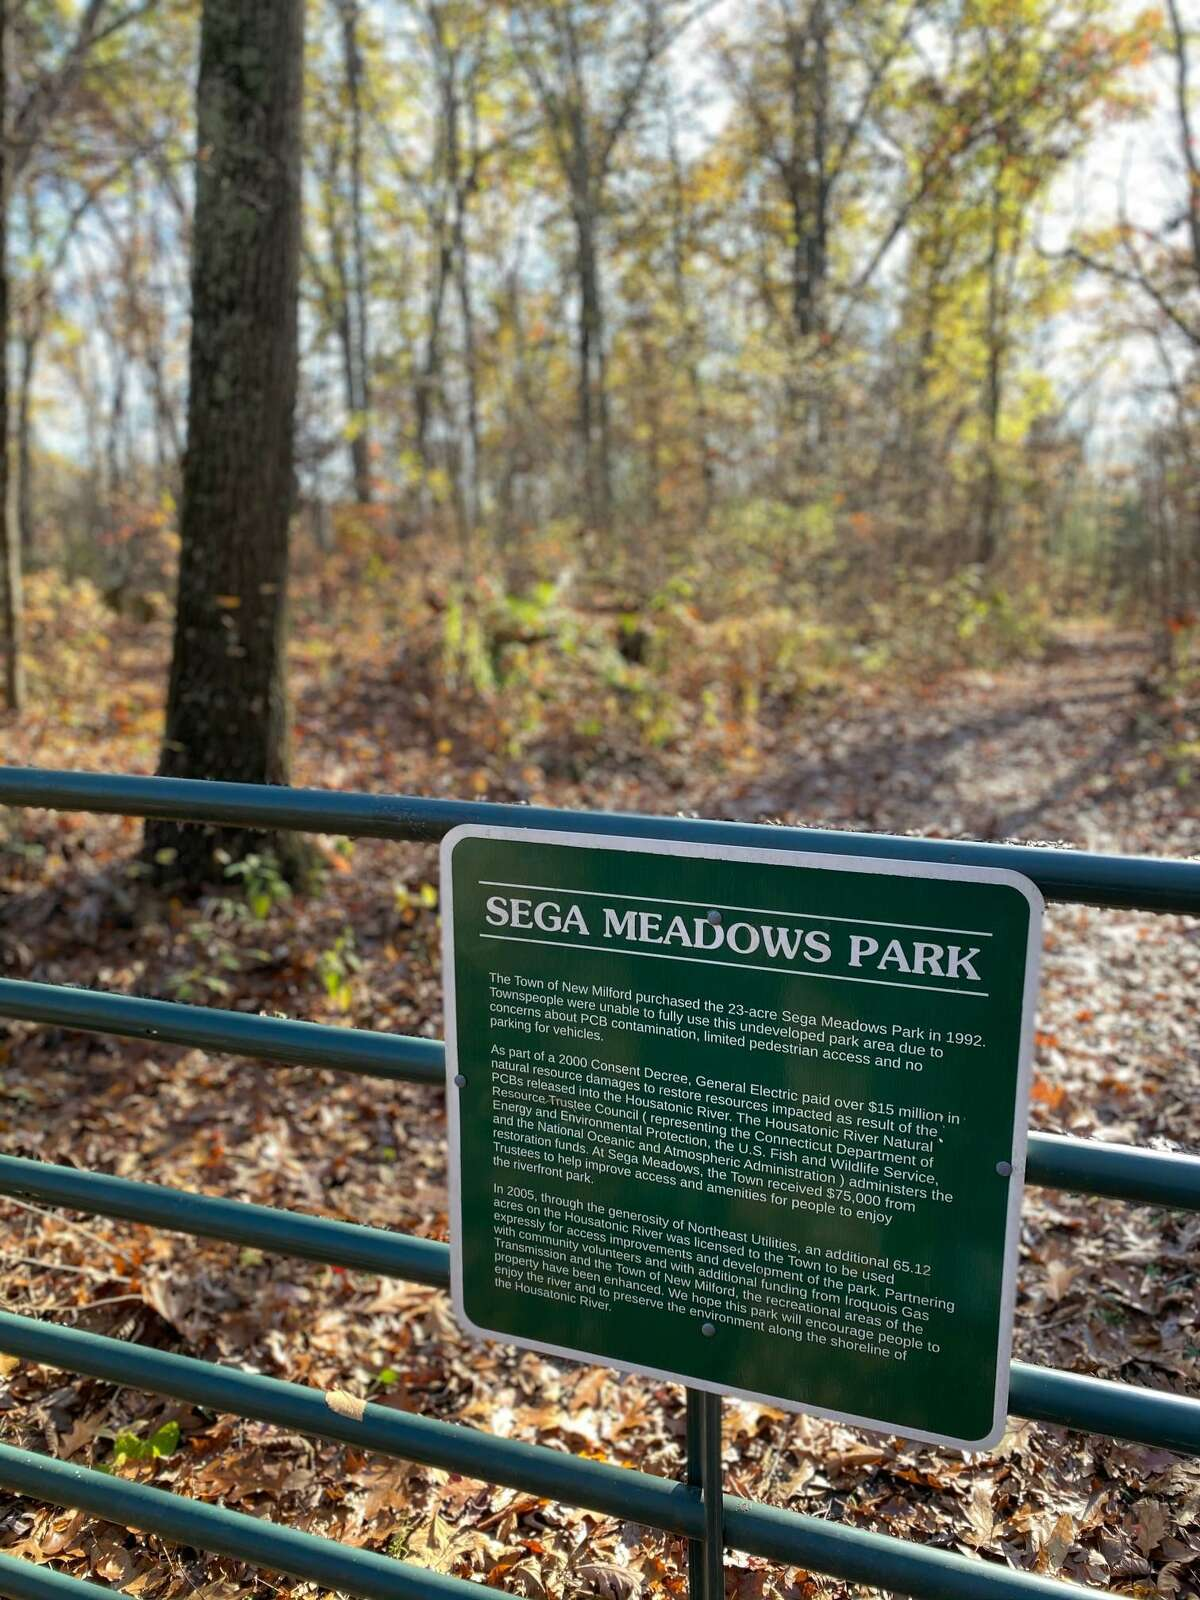 Spectrum/The town of New Milford has numerous town parks, each with their own special features, including trails, picnic tables and more. Sega Meadows Park off Boardman Road offers beautiful trails through wooded areas. Nov. 1, 2020